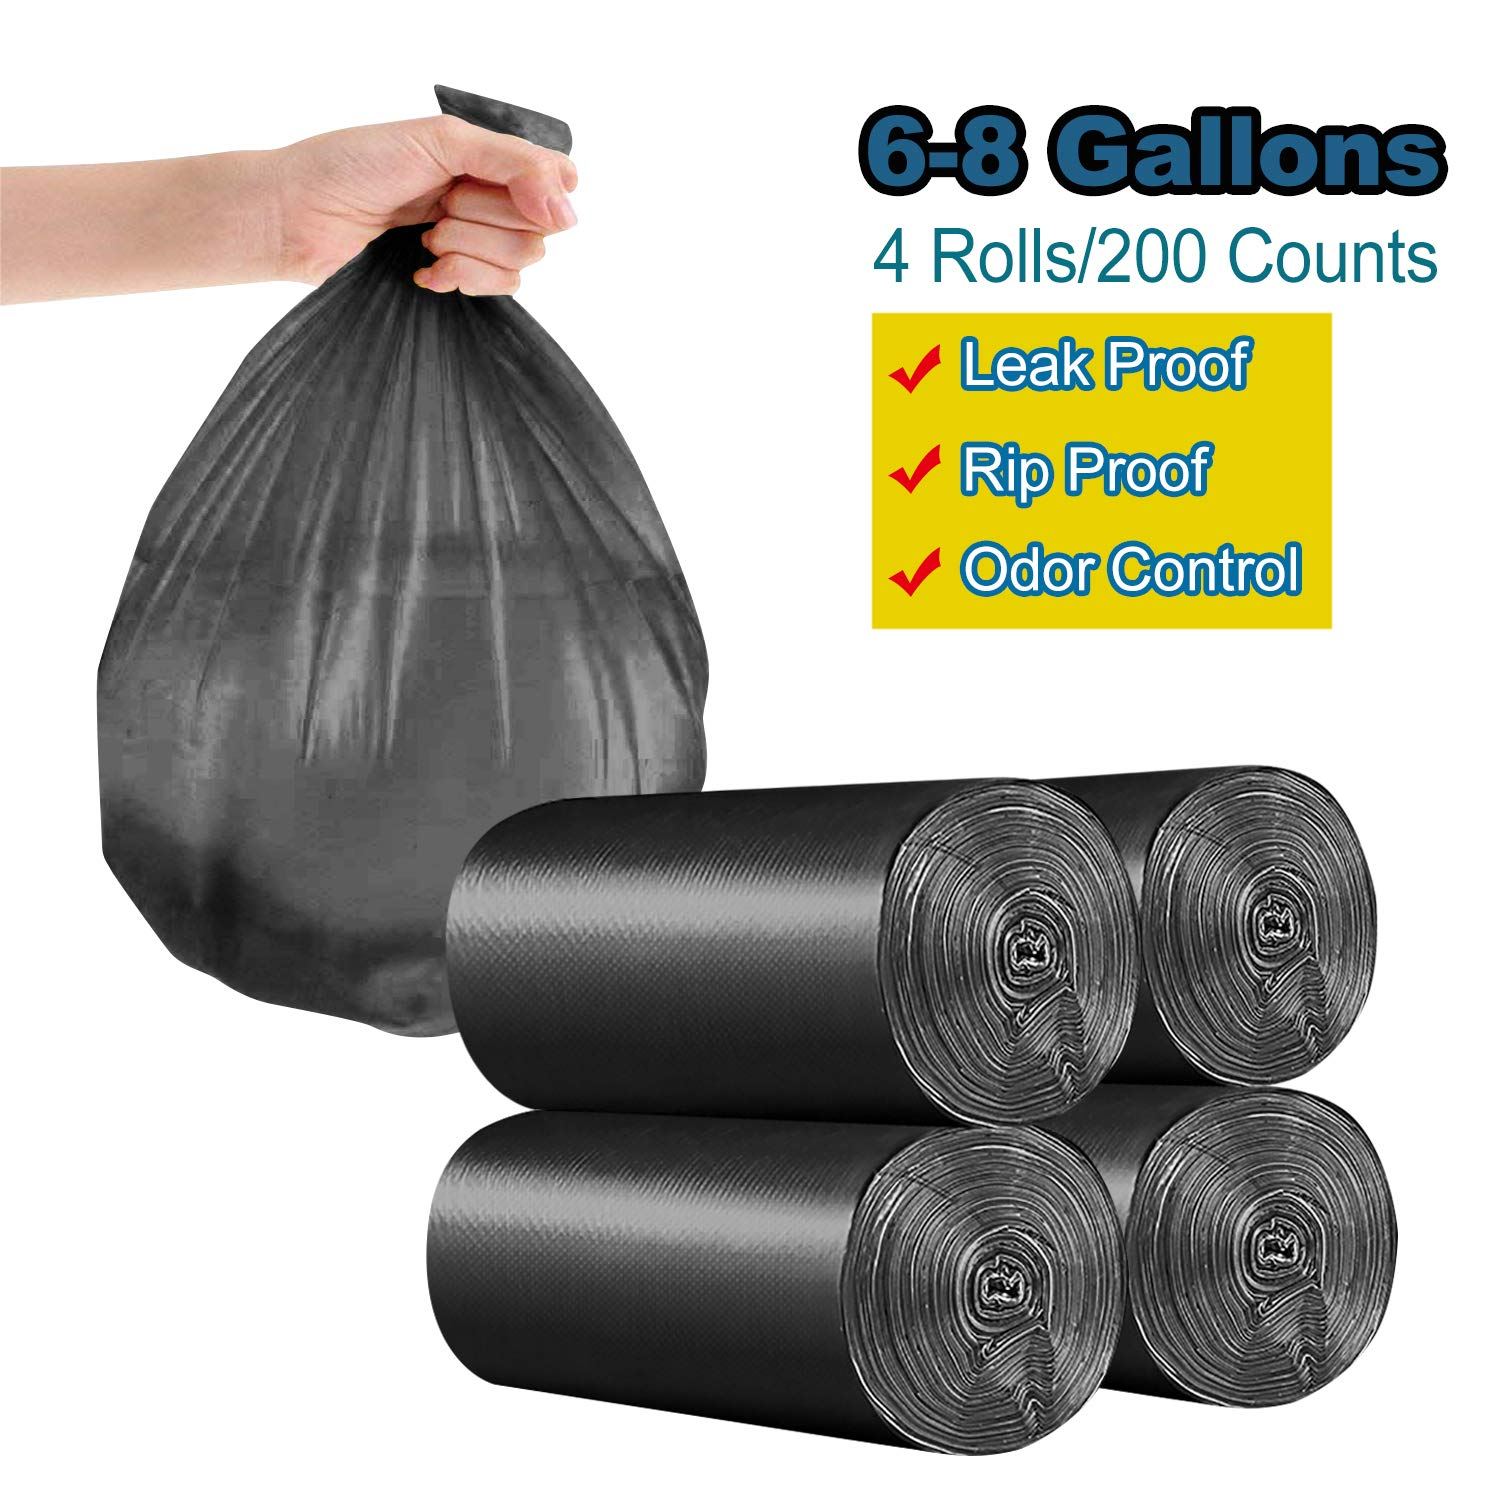 - Black Extra Thicken Strong Rubbish Bags for Bedroom Home Kitchen Office Waste Bins 6-8 Gallon//200pcs Trash Bags 200 Counts//4 Rolls Yachee Medium Bathroom Trash can Liners Garbage Bags